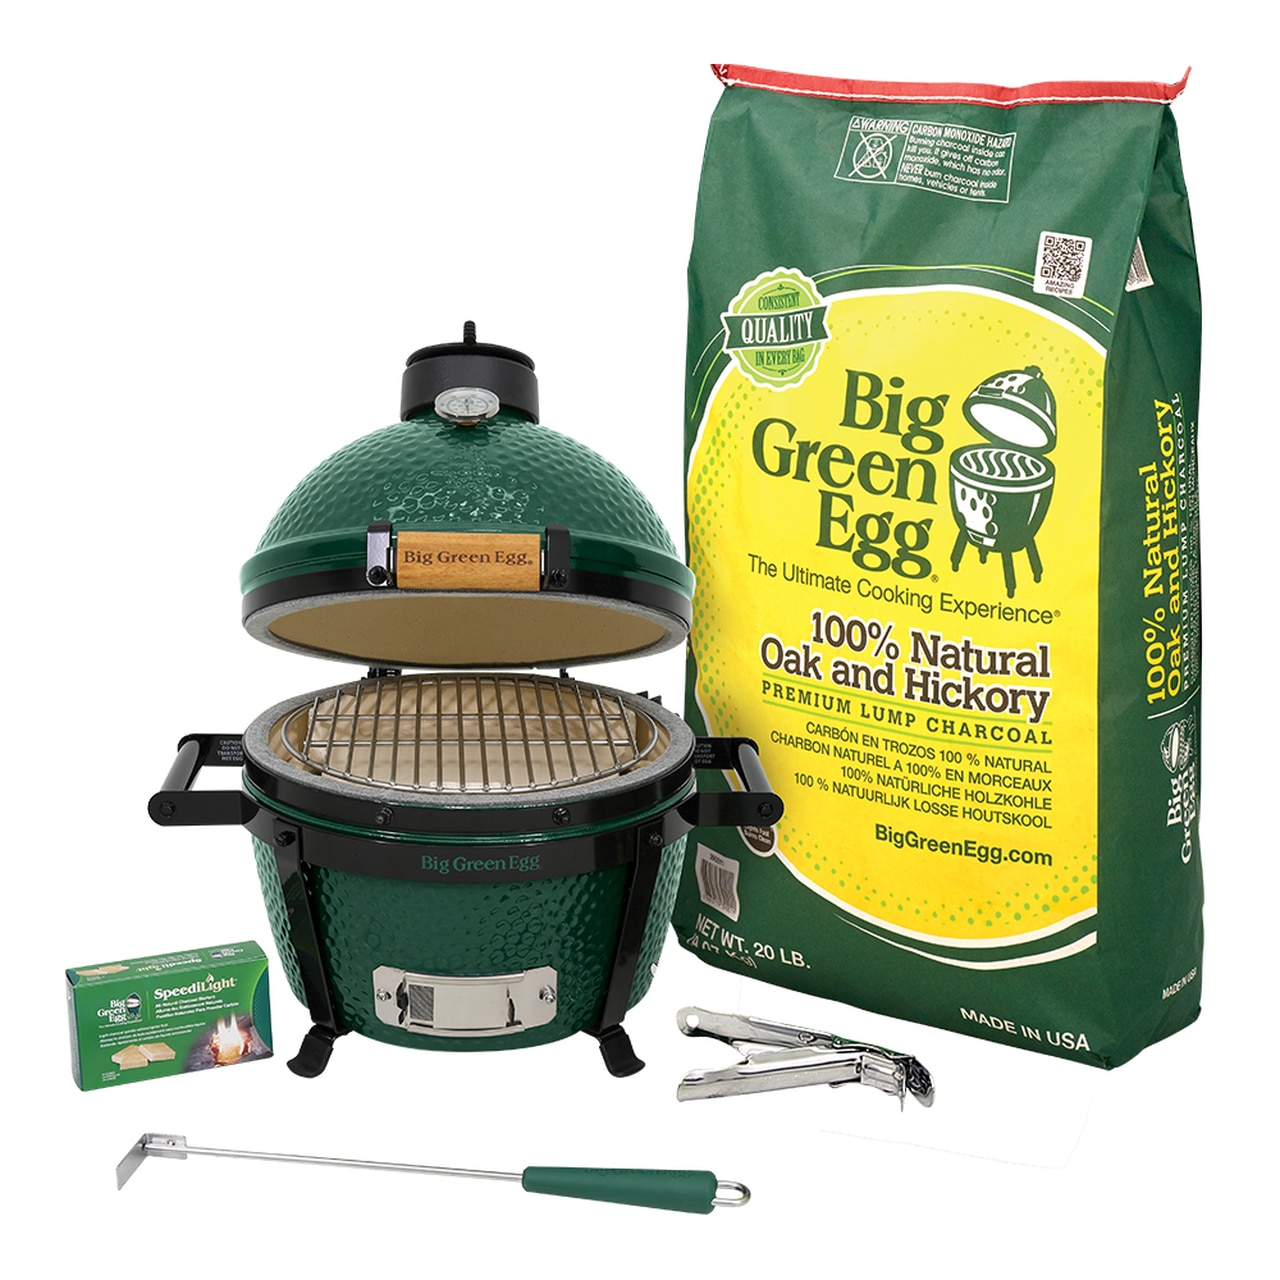 MiniMax Big Green Egg Package